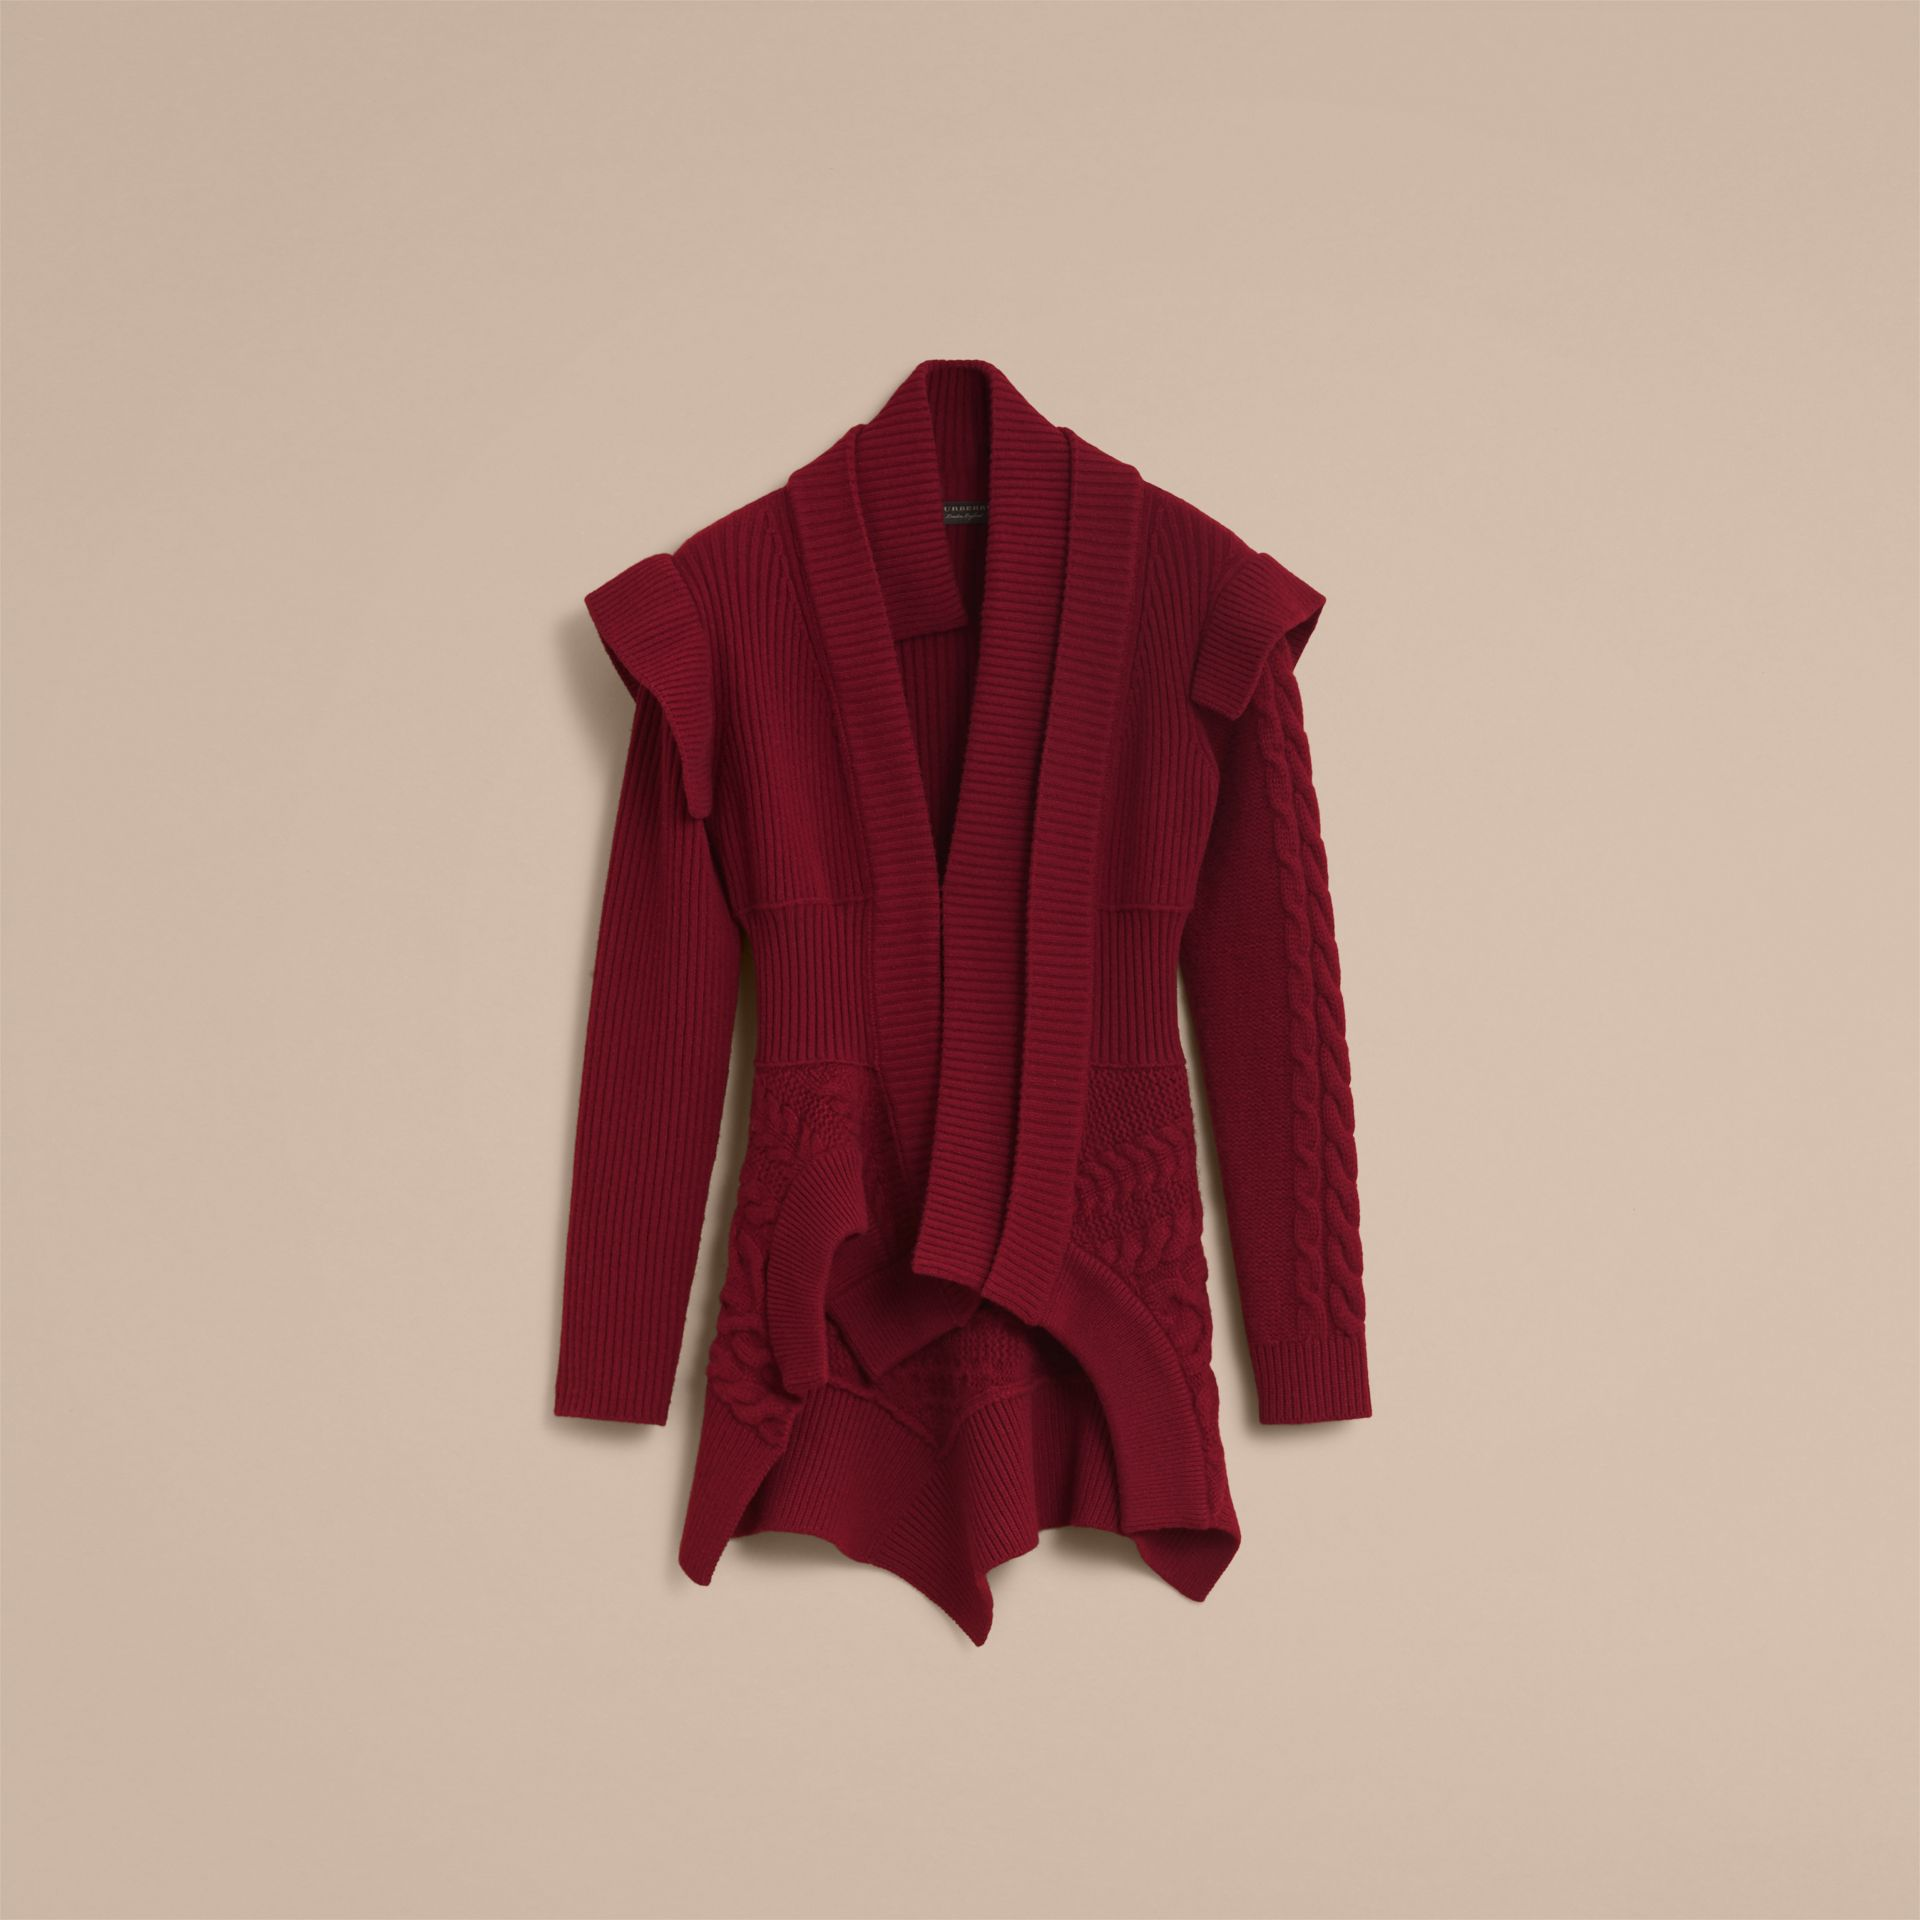 Knitted Wool Cashmere Military-inspired Jacket in Bordeaux - Women | Burberry - gallery image 4